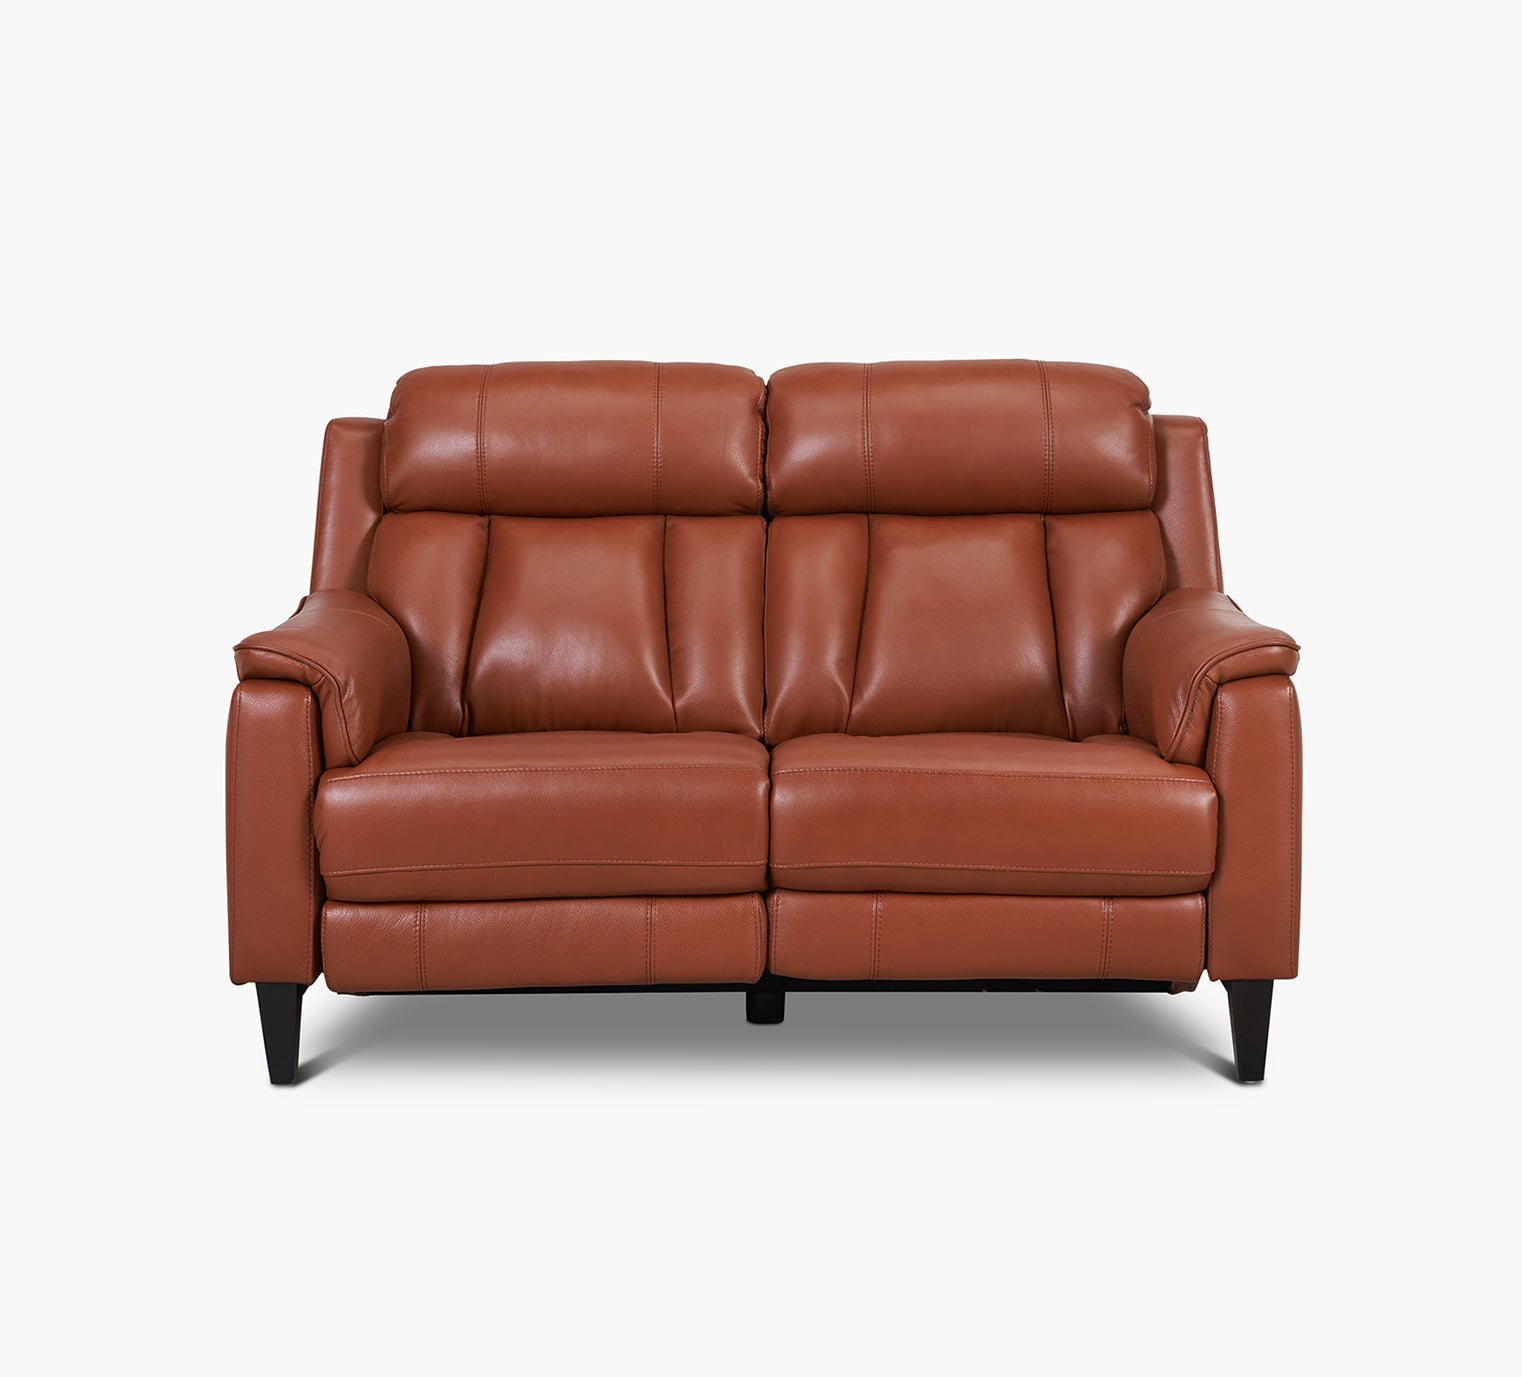 Swell Everett Brown Power Sofa With Power Headrest Kanes Furniture Pdpeps Interior Chair Design Pdpepsorg